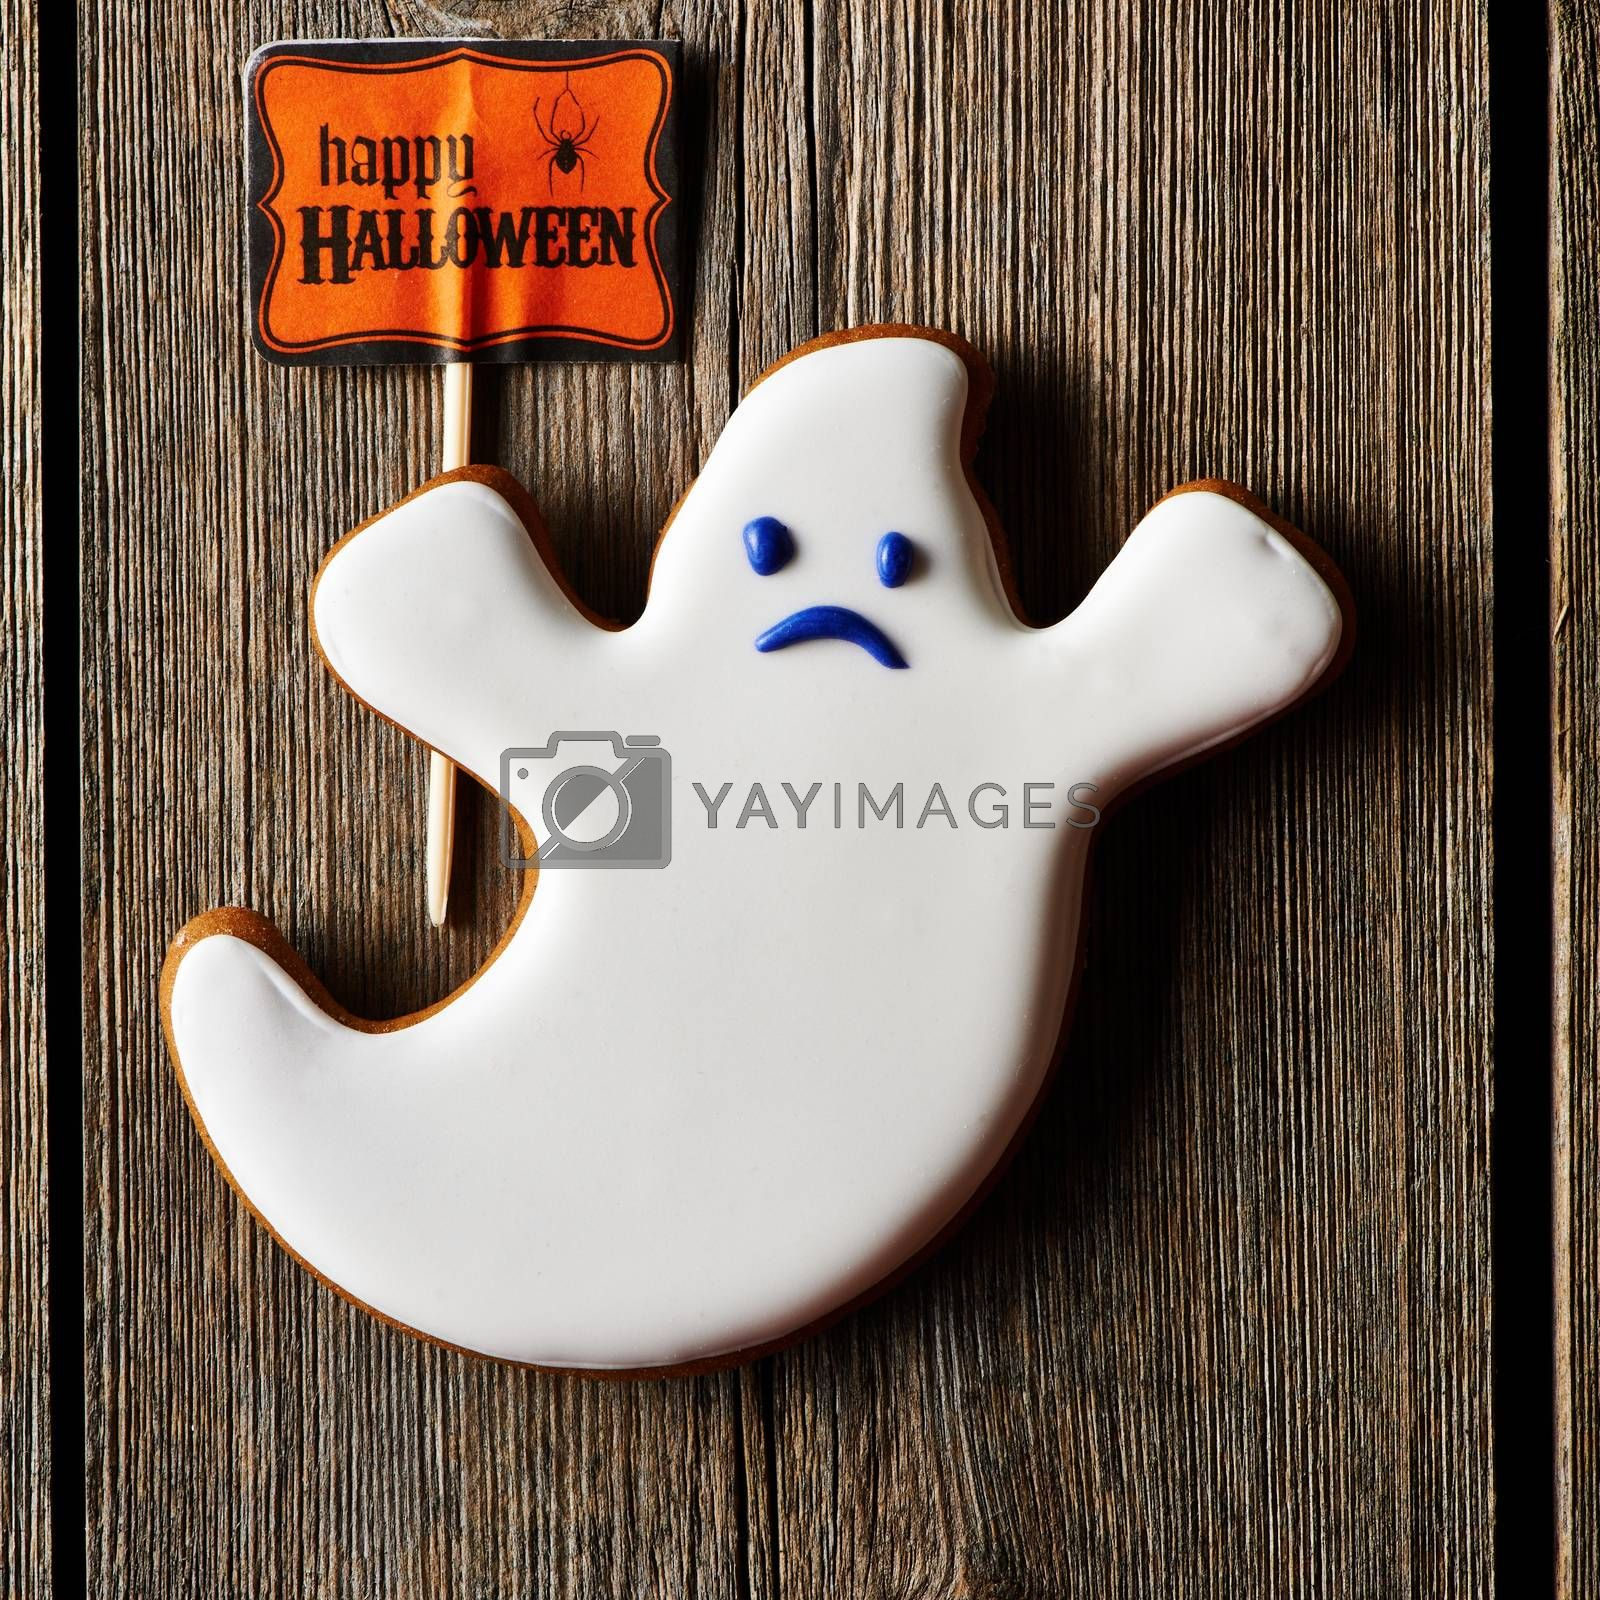 Halloween homemade gingerbread cookie over wooden table